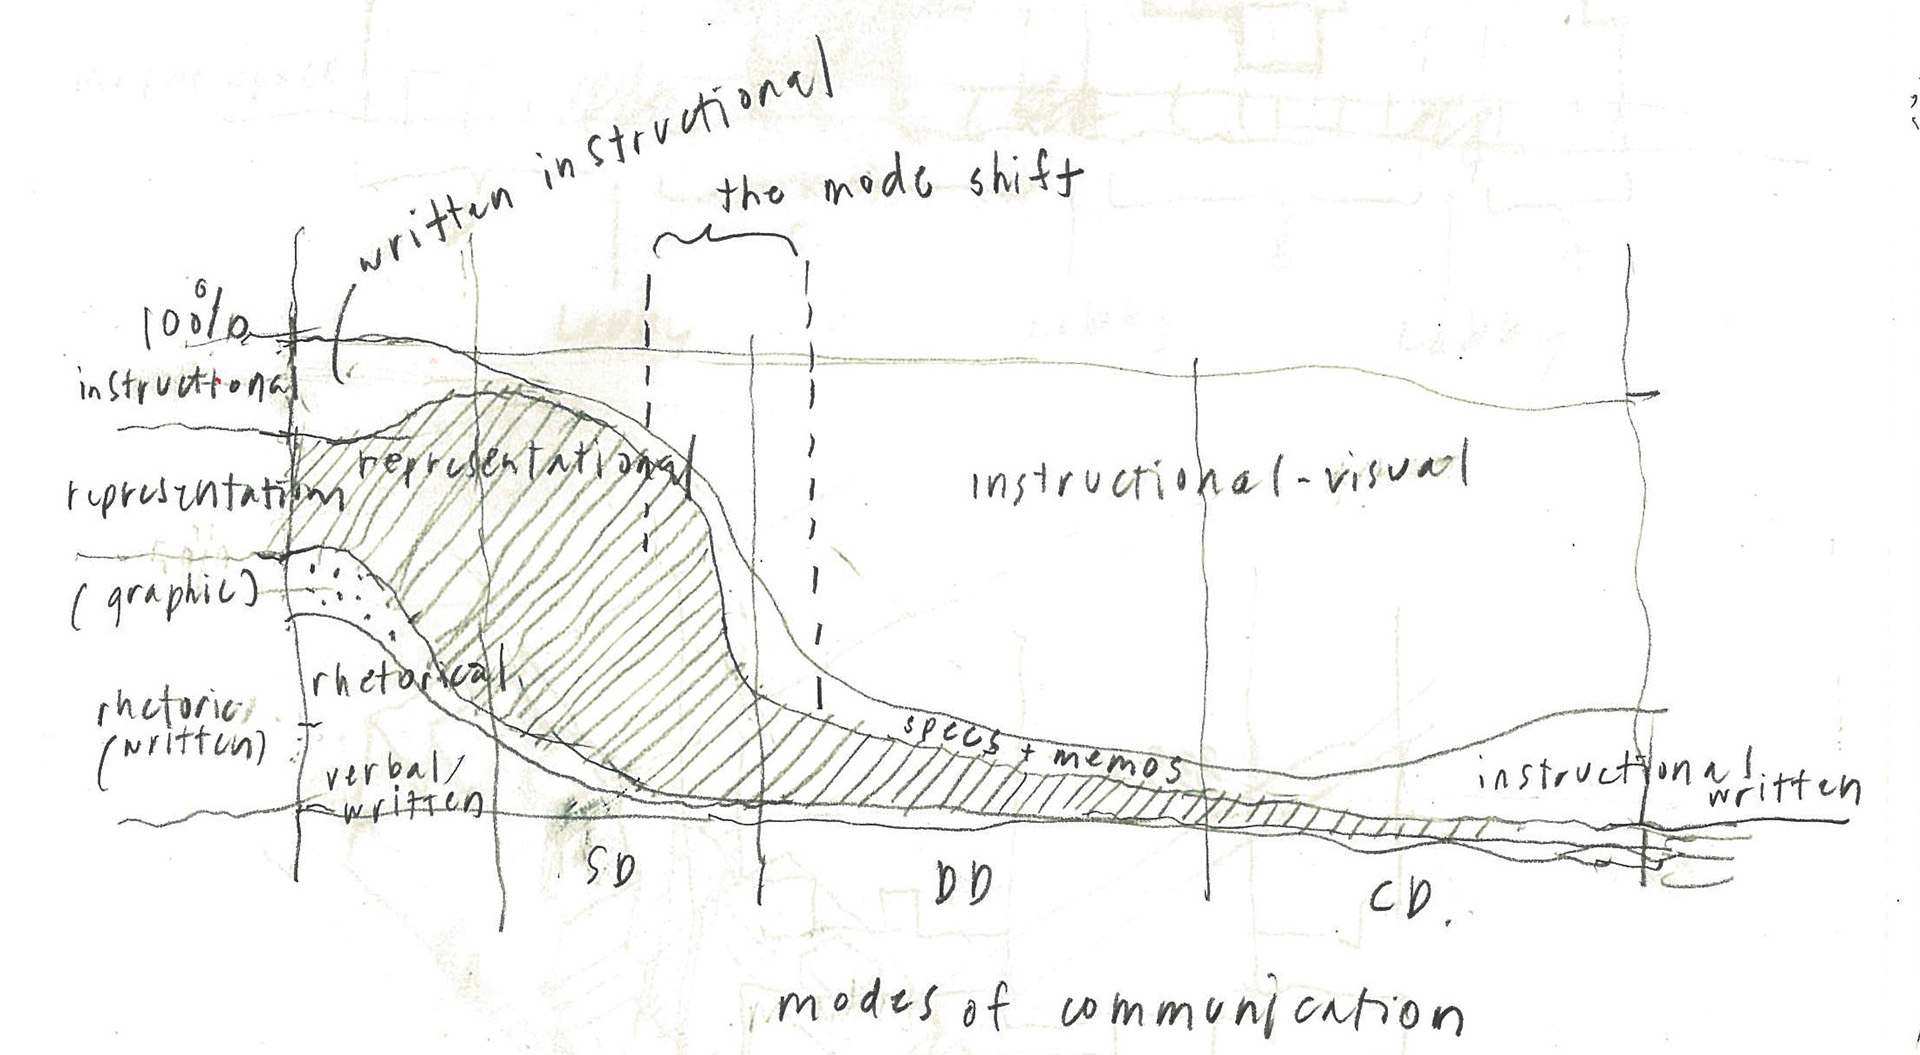 communication cycle diagram of crossing over during utile 39s blog is a creative architecture and urban